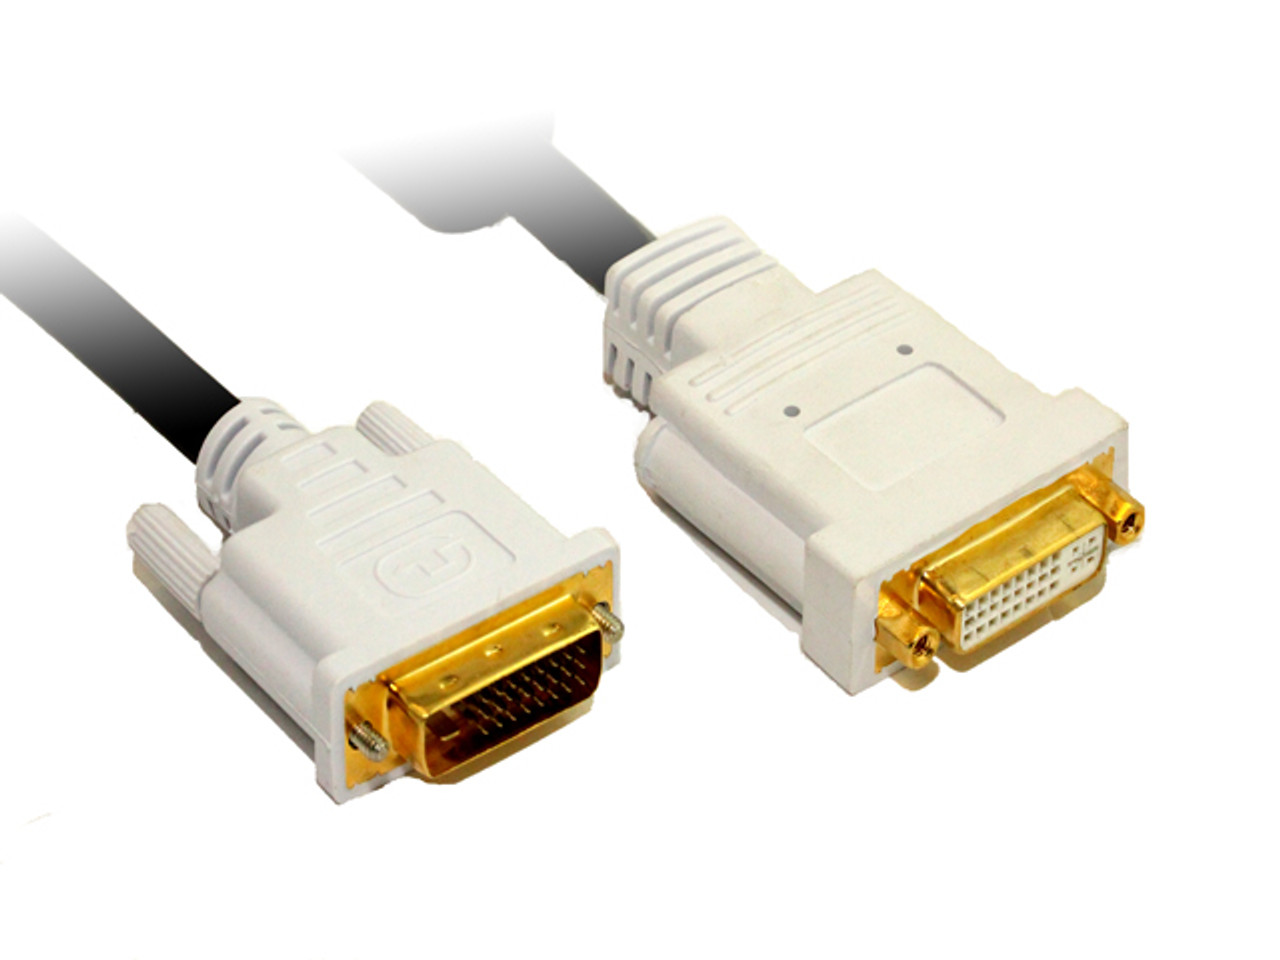 Product image for 10M DVI-D Extension Cable | CX Computer Superstore